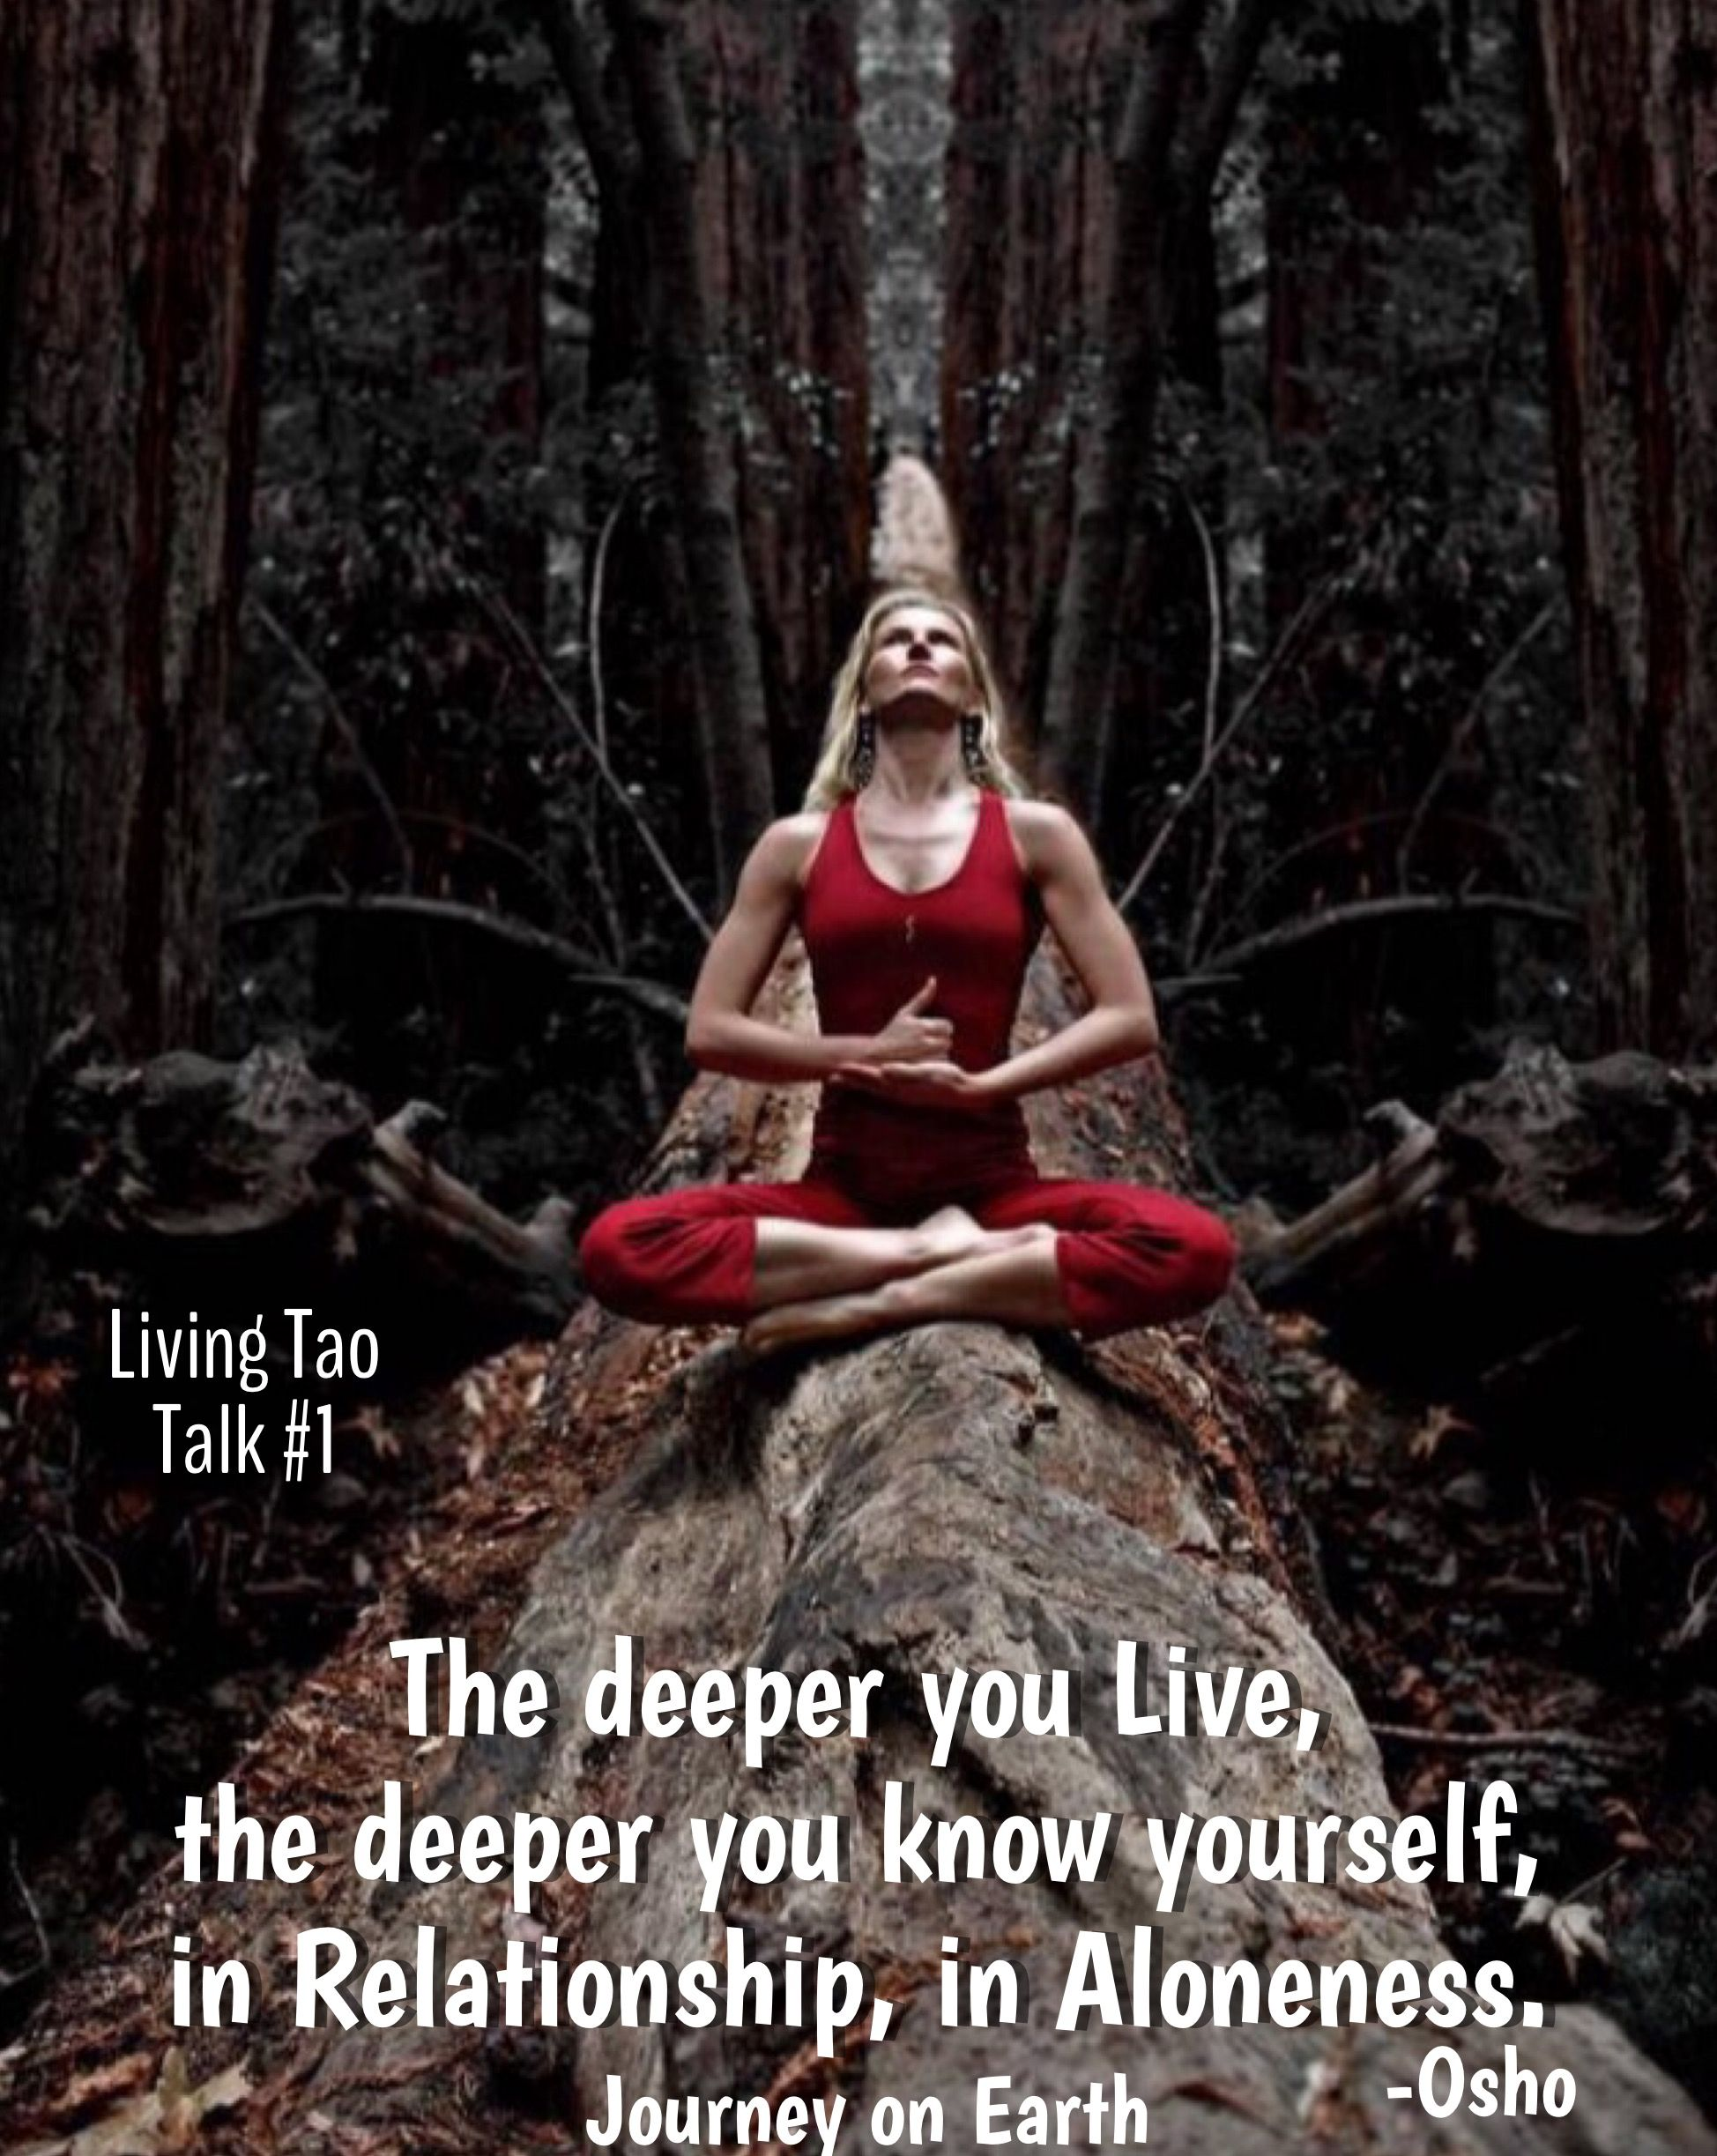 The deeper you Live, the deeper you know yourself, in Relationship, in Aloneness. Osho, Living Tao, Talk #1